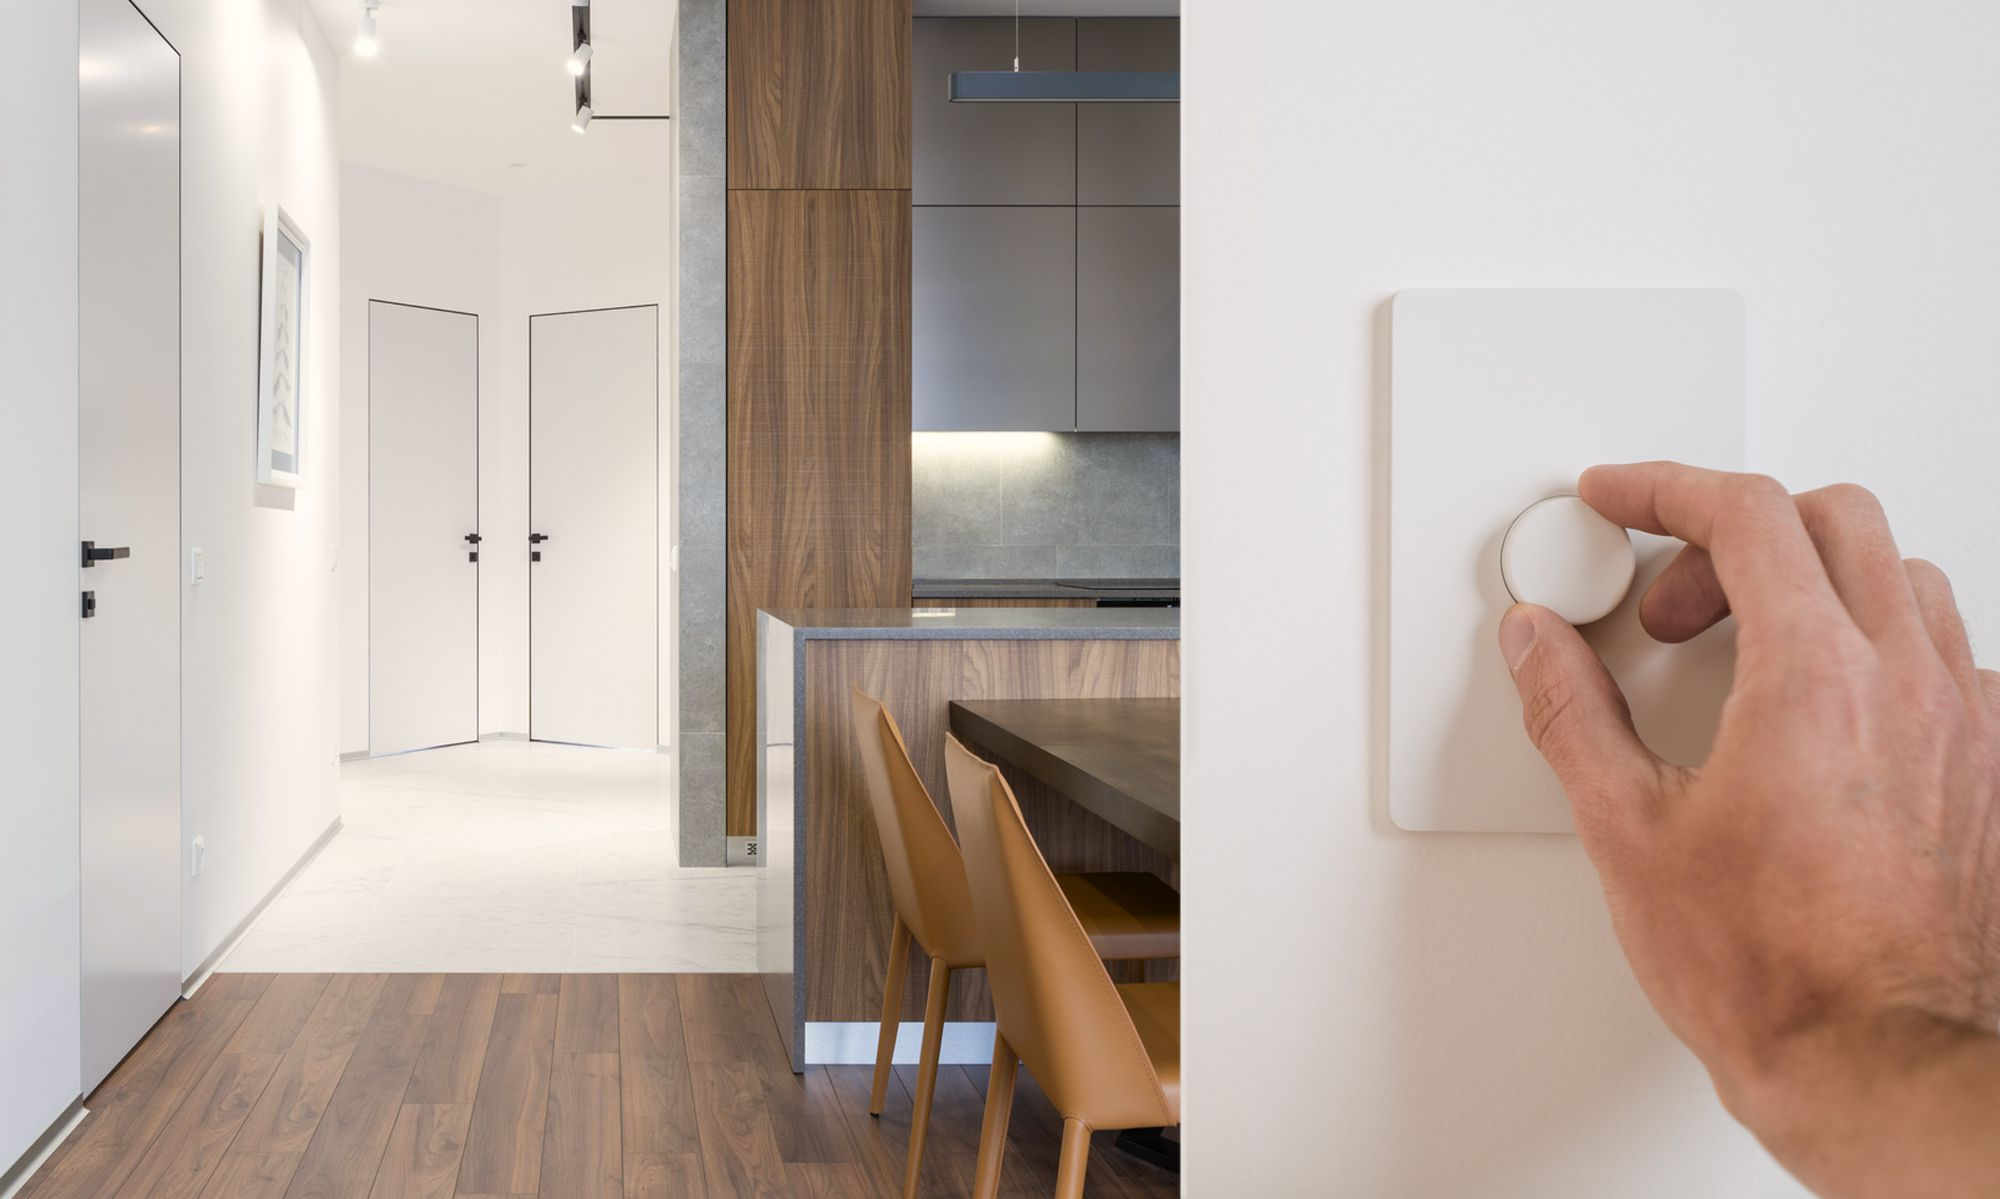 Nokia's new smart dial light switch